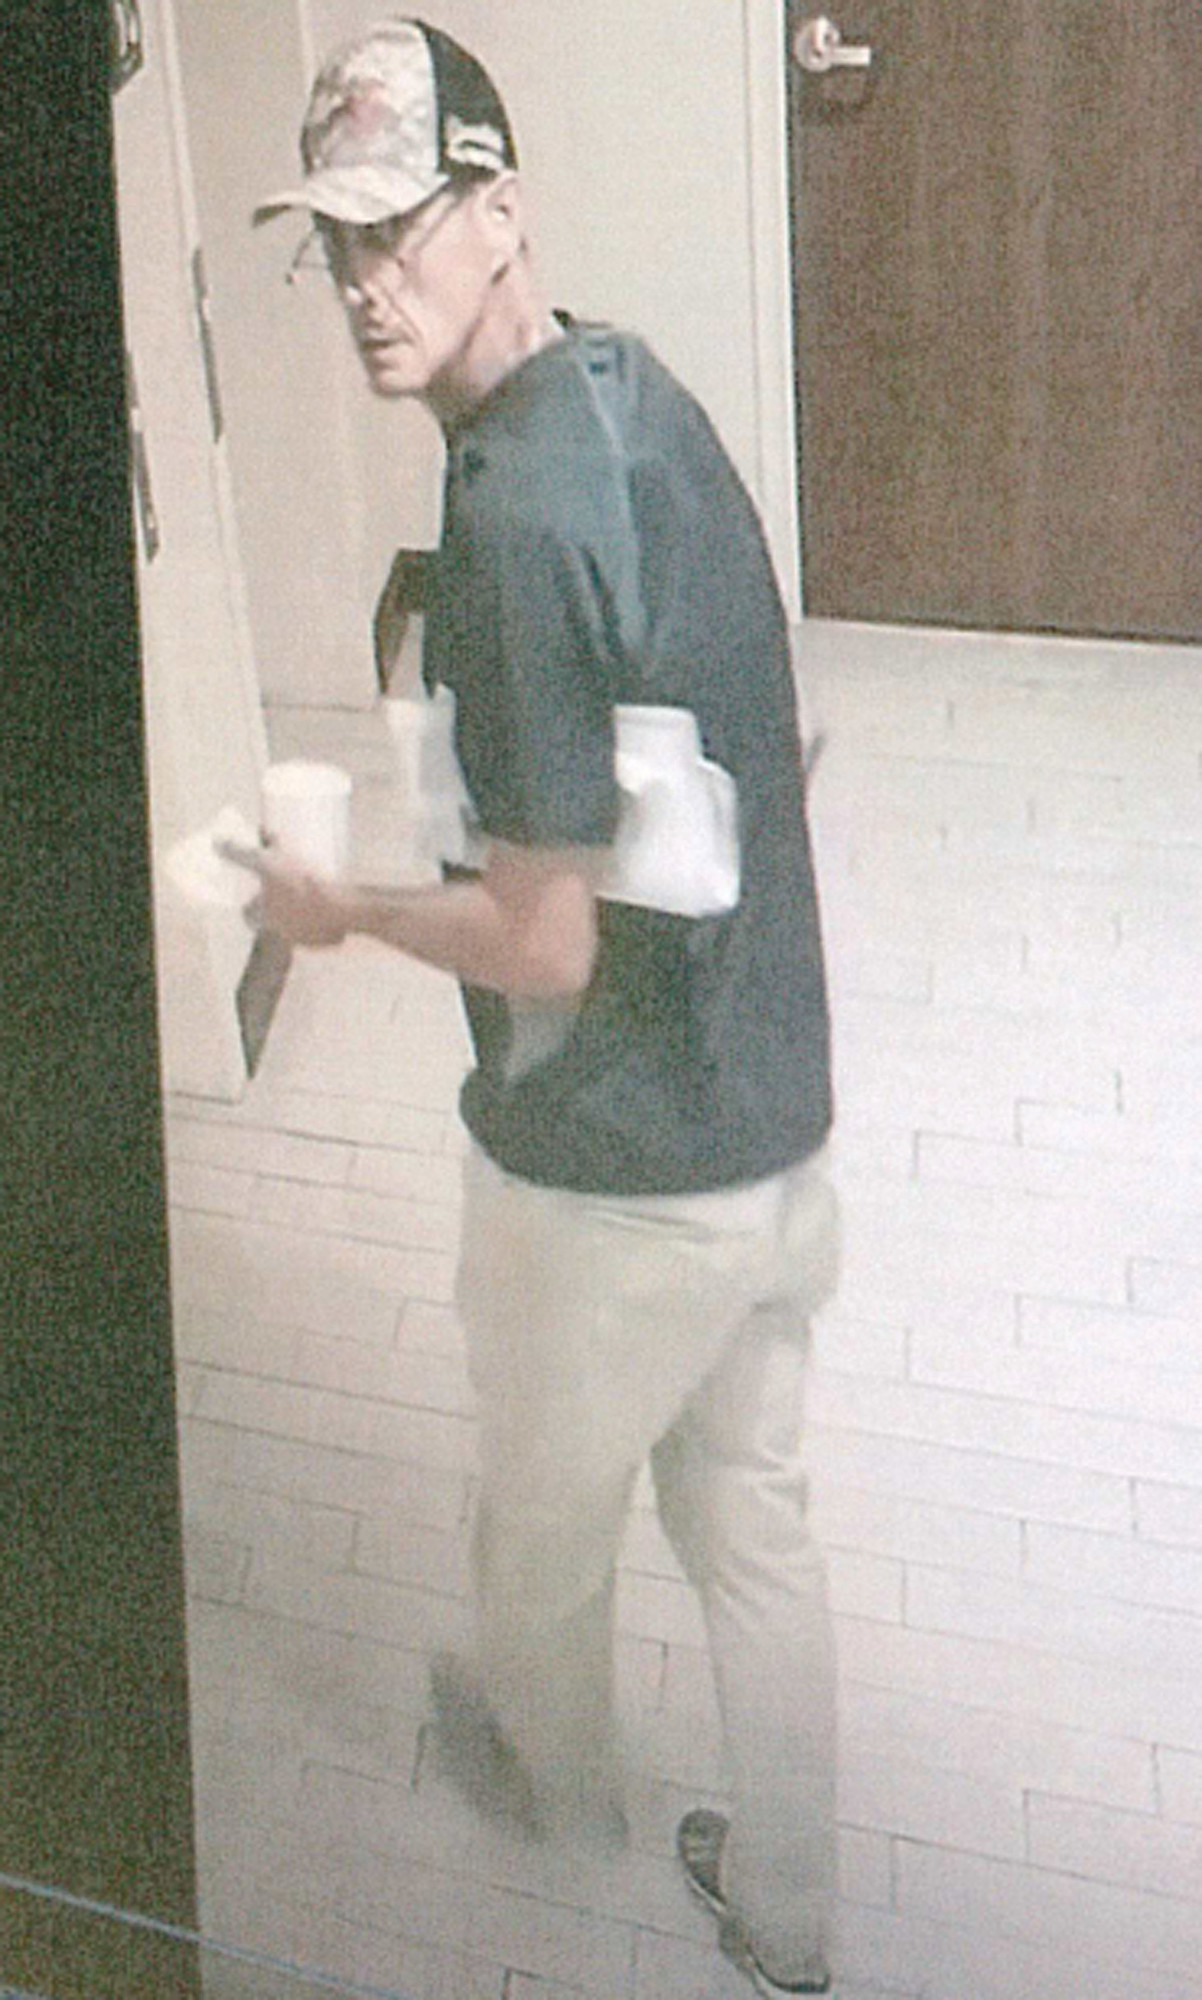 Clarendon County Sheriff's Office is asking for help identifying the man in a surveillance video taken June 16 at Hampton Inn by Hilton at 2822 Paxville Highway, near Interstate 95 at exit 119.